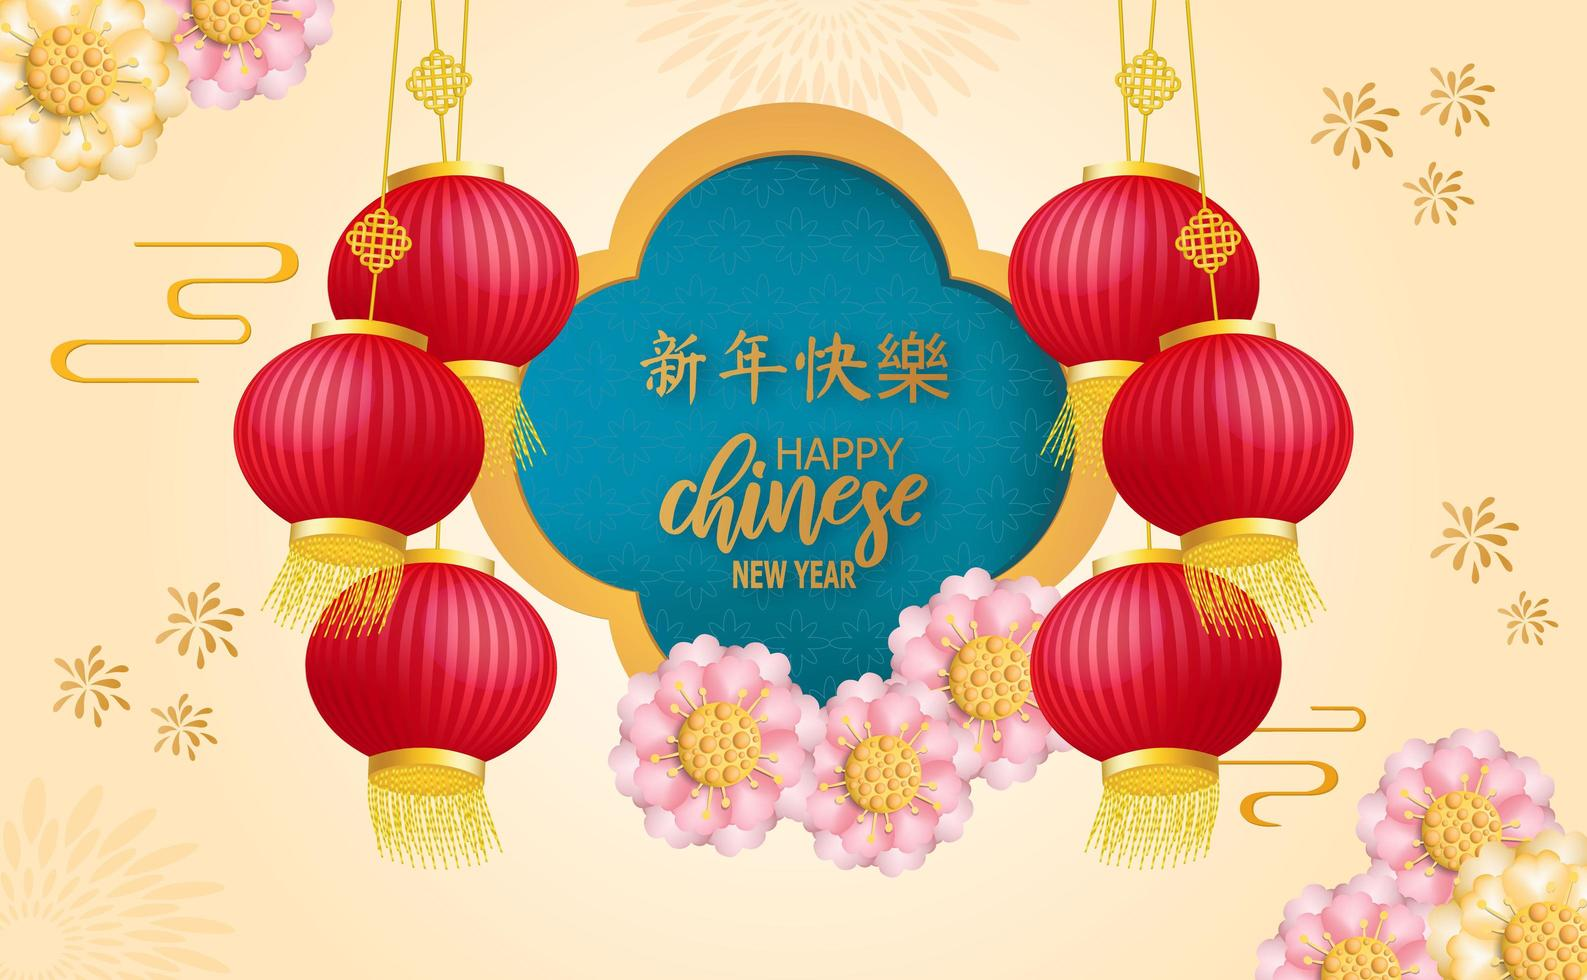 Happy Chiniese new year with Chinese lantern element vector